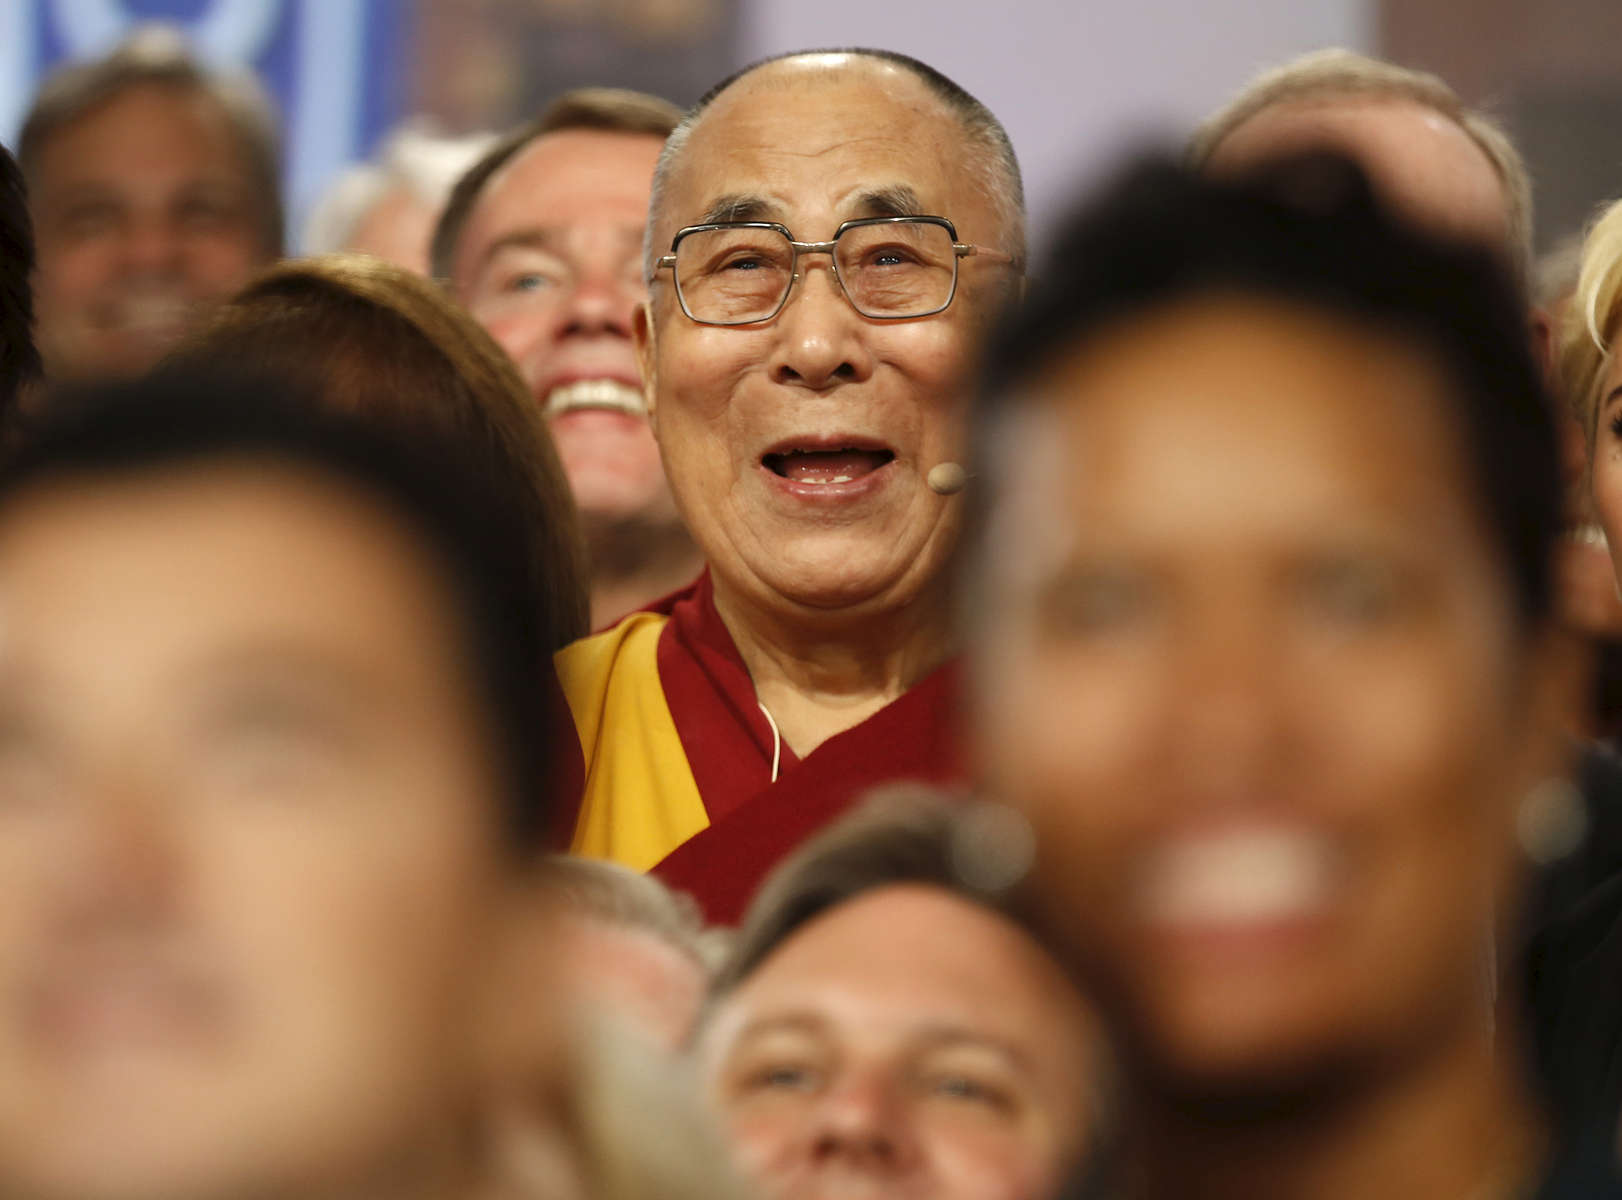 The Dalai Lama during The United States Conference of Mayors in Indianapolis, Indiana Sunday June 26, 2016.